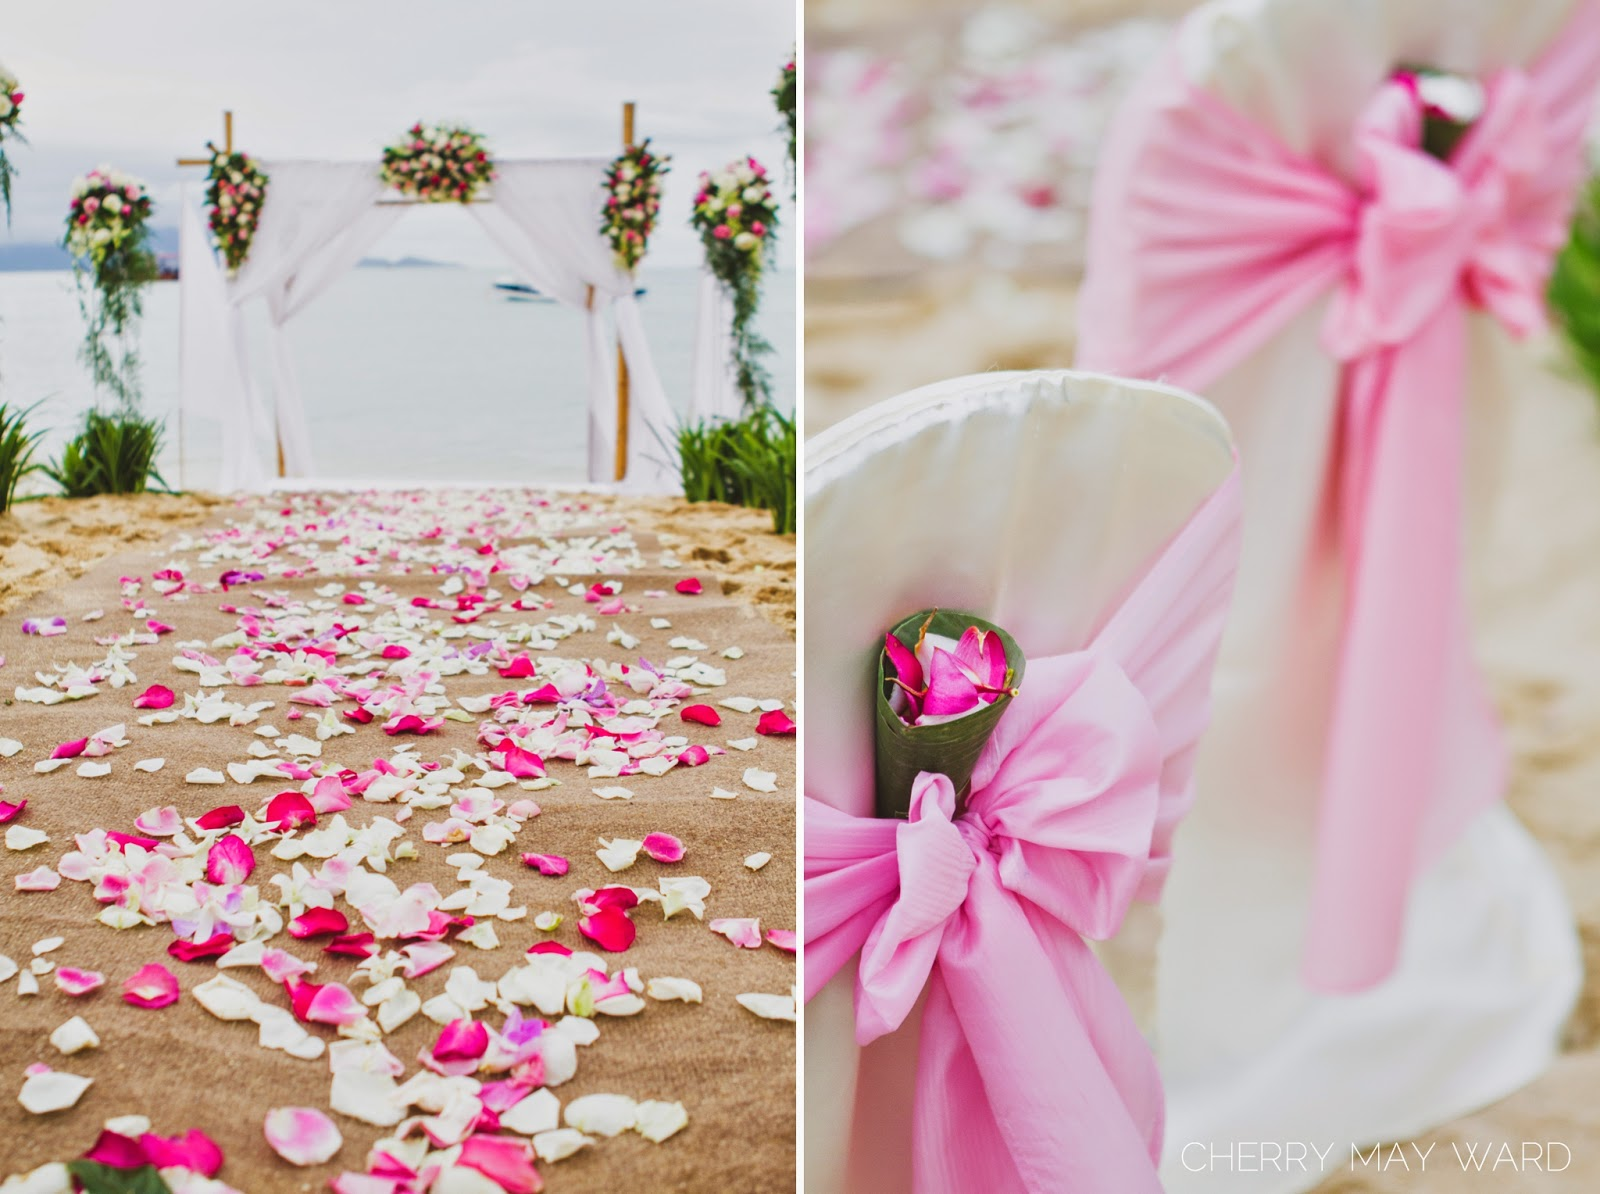 Cherry May Ward, Koh Samui Wedding Photographer: [wedding] Ashling + ...